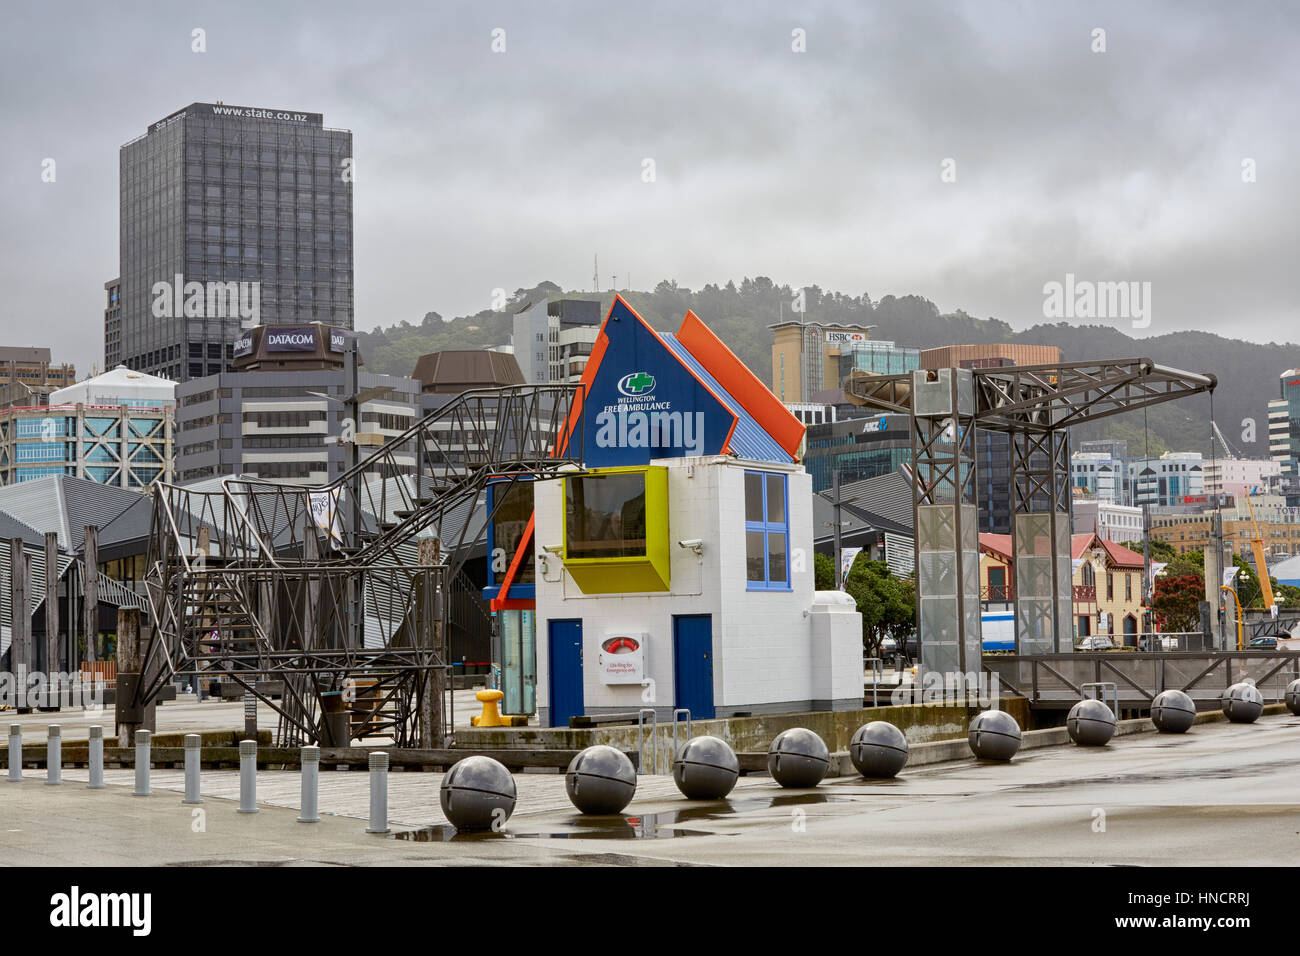 Free Ambulance building, Wellington, New Zealand - Stock Image